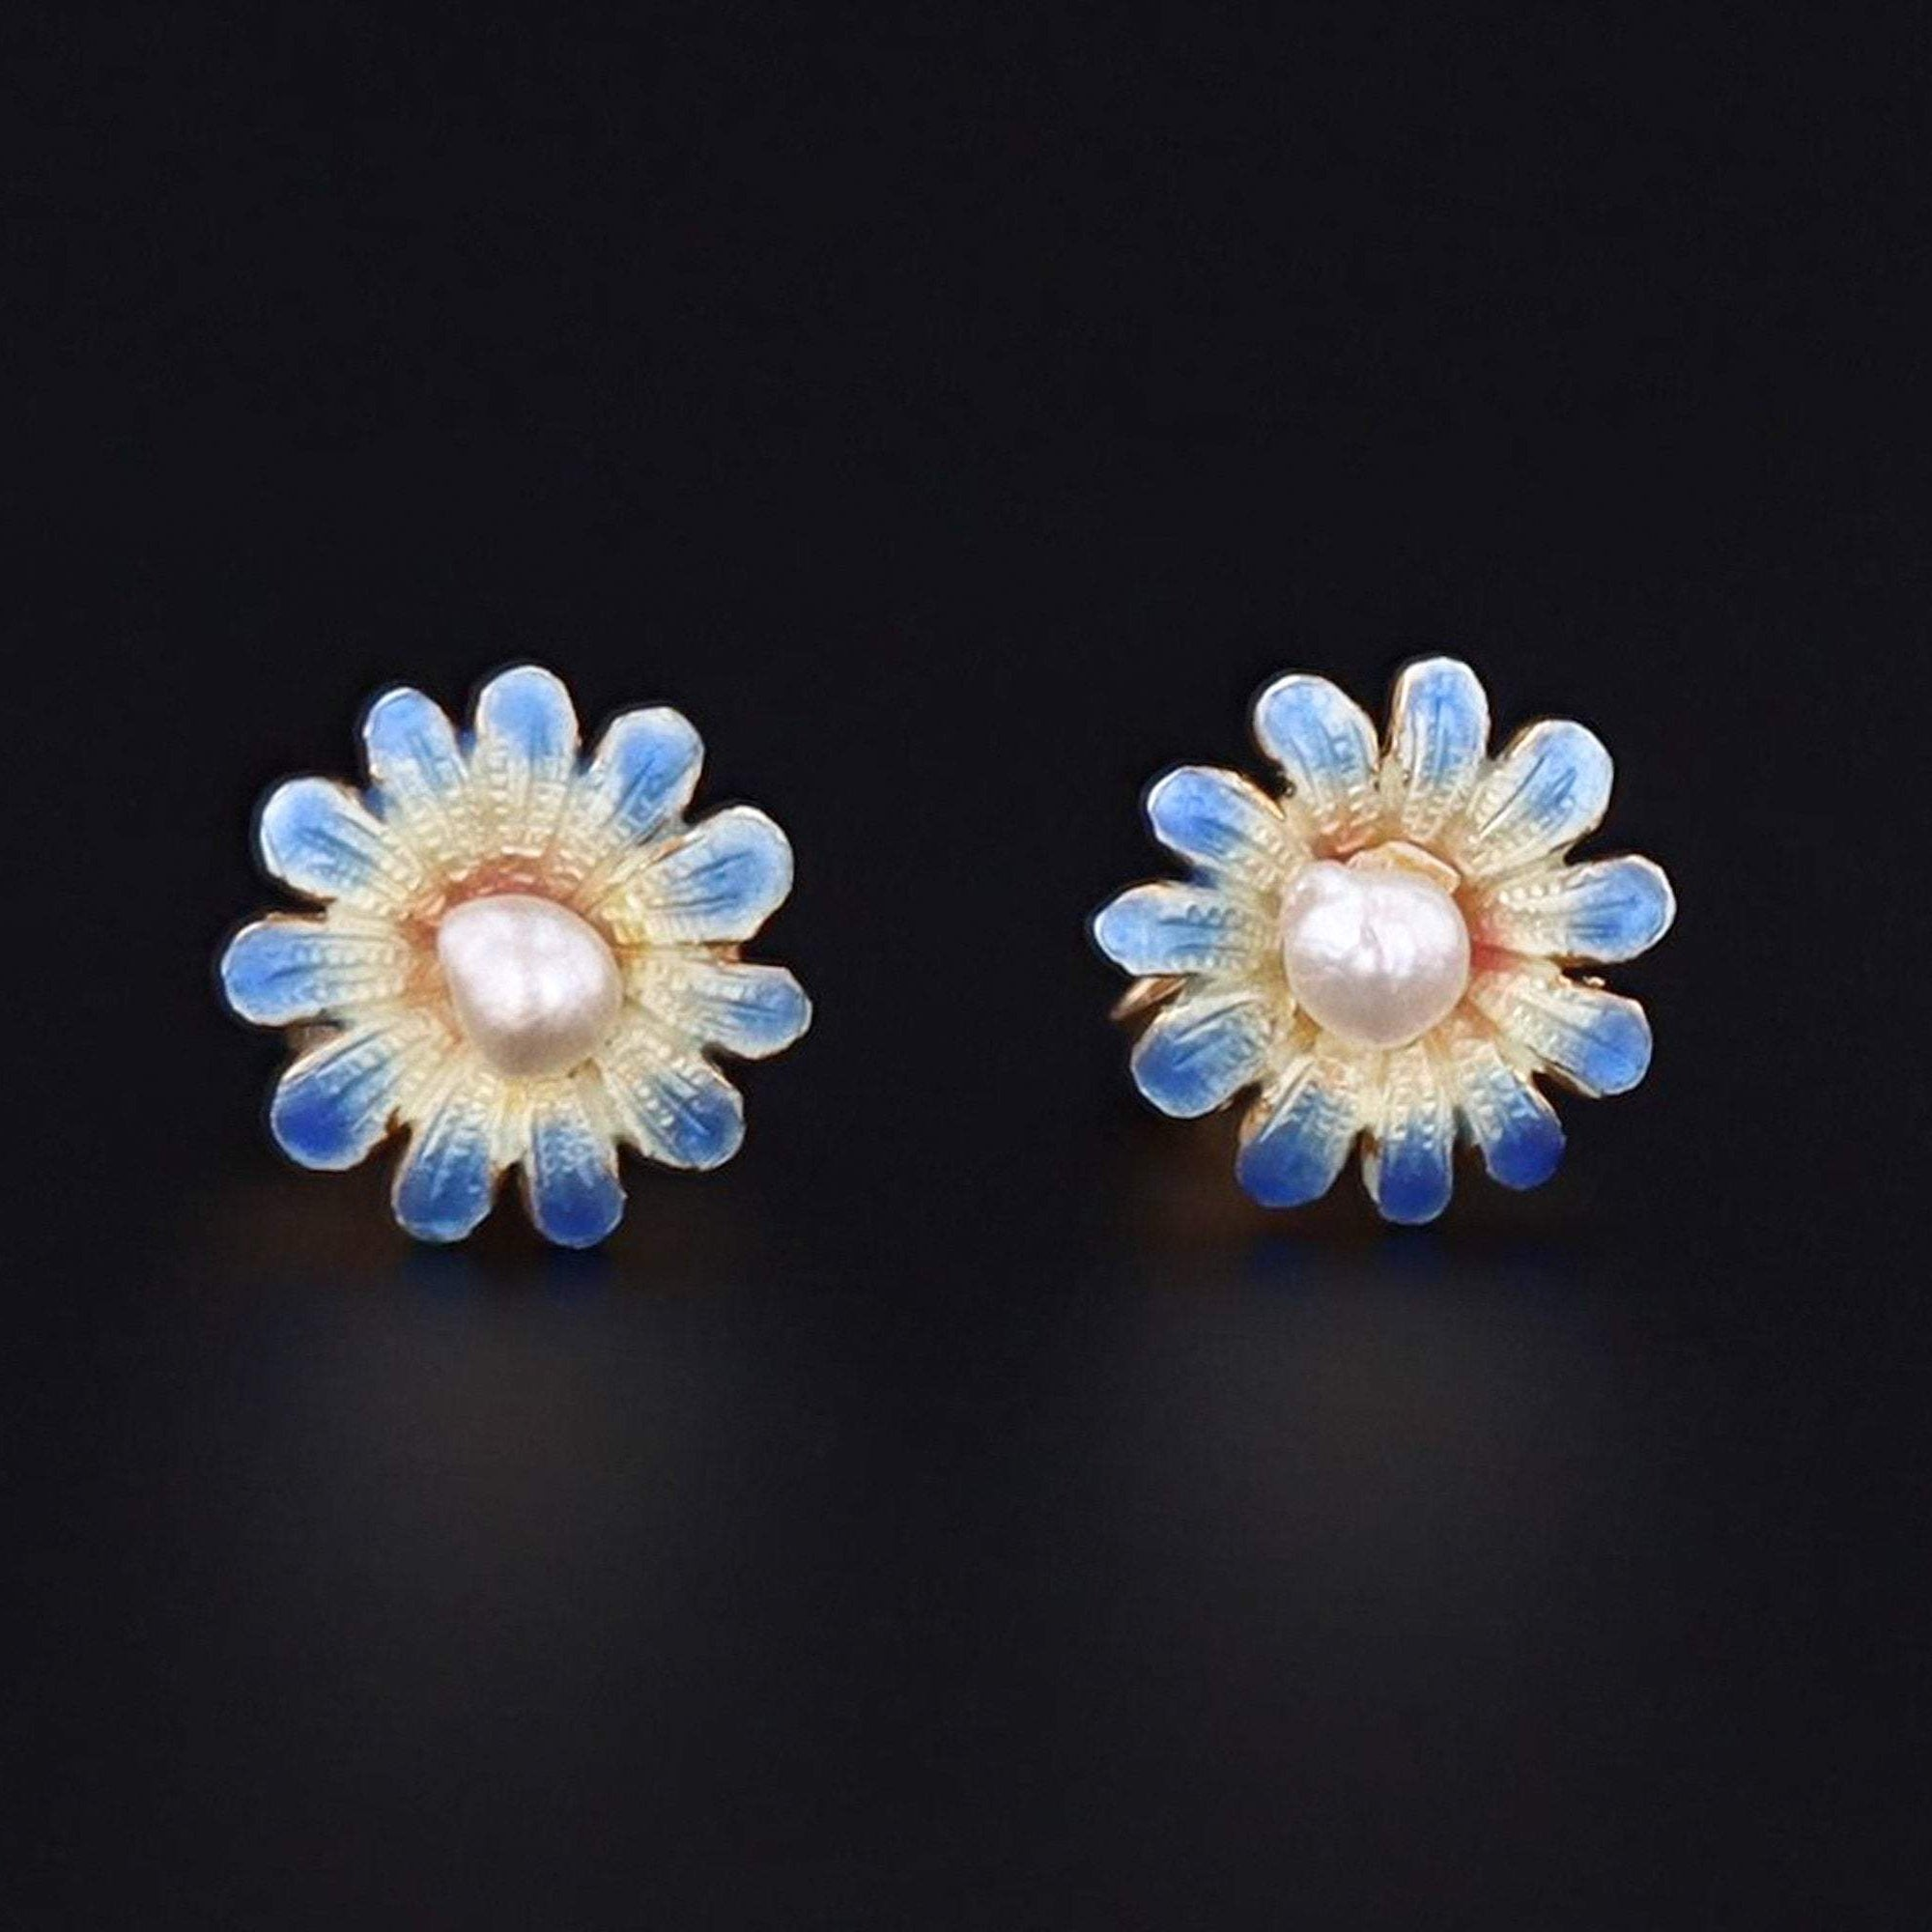 Enamel Flower Earrings | 14k Gold Earrings | Blue Daisy Earrings | Vintage Pin Conversion Earrings